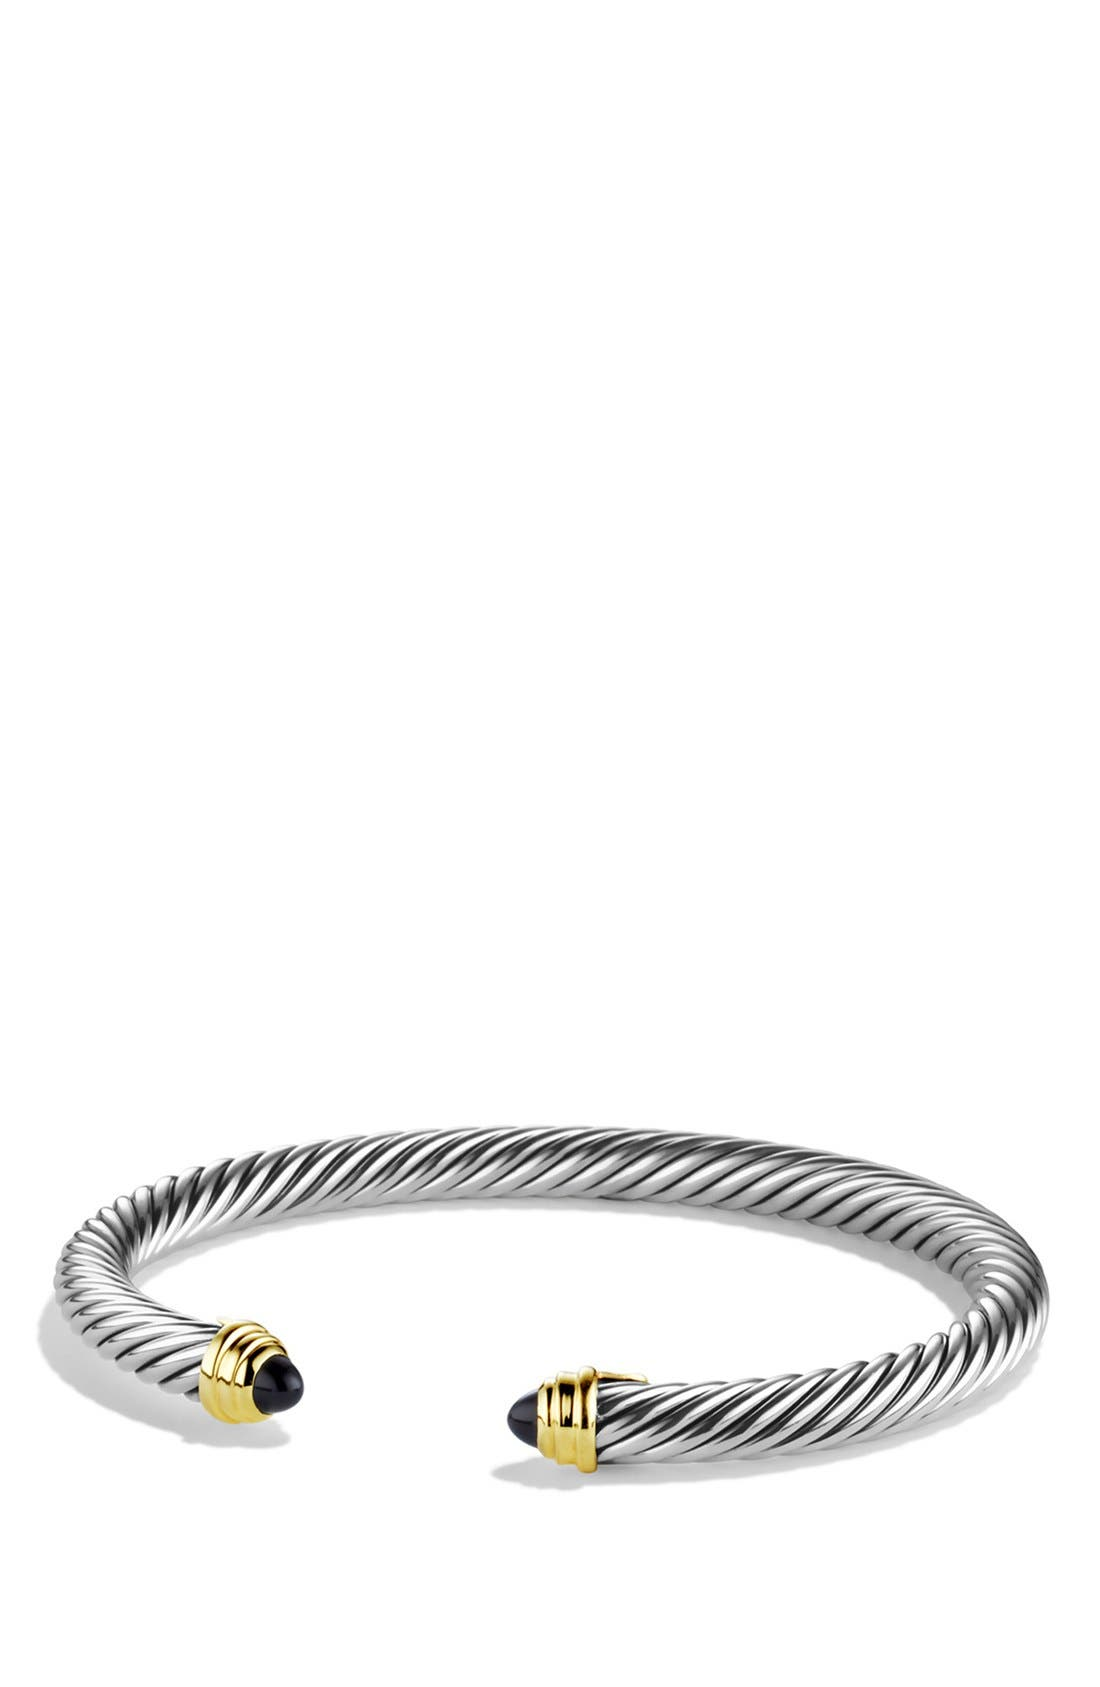 DAVID YURMAN Cable Classics Bracelet with Semiprecious Stones & Gold